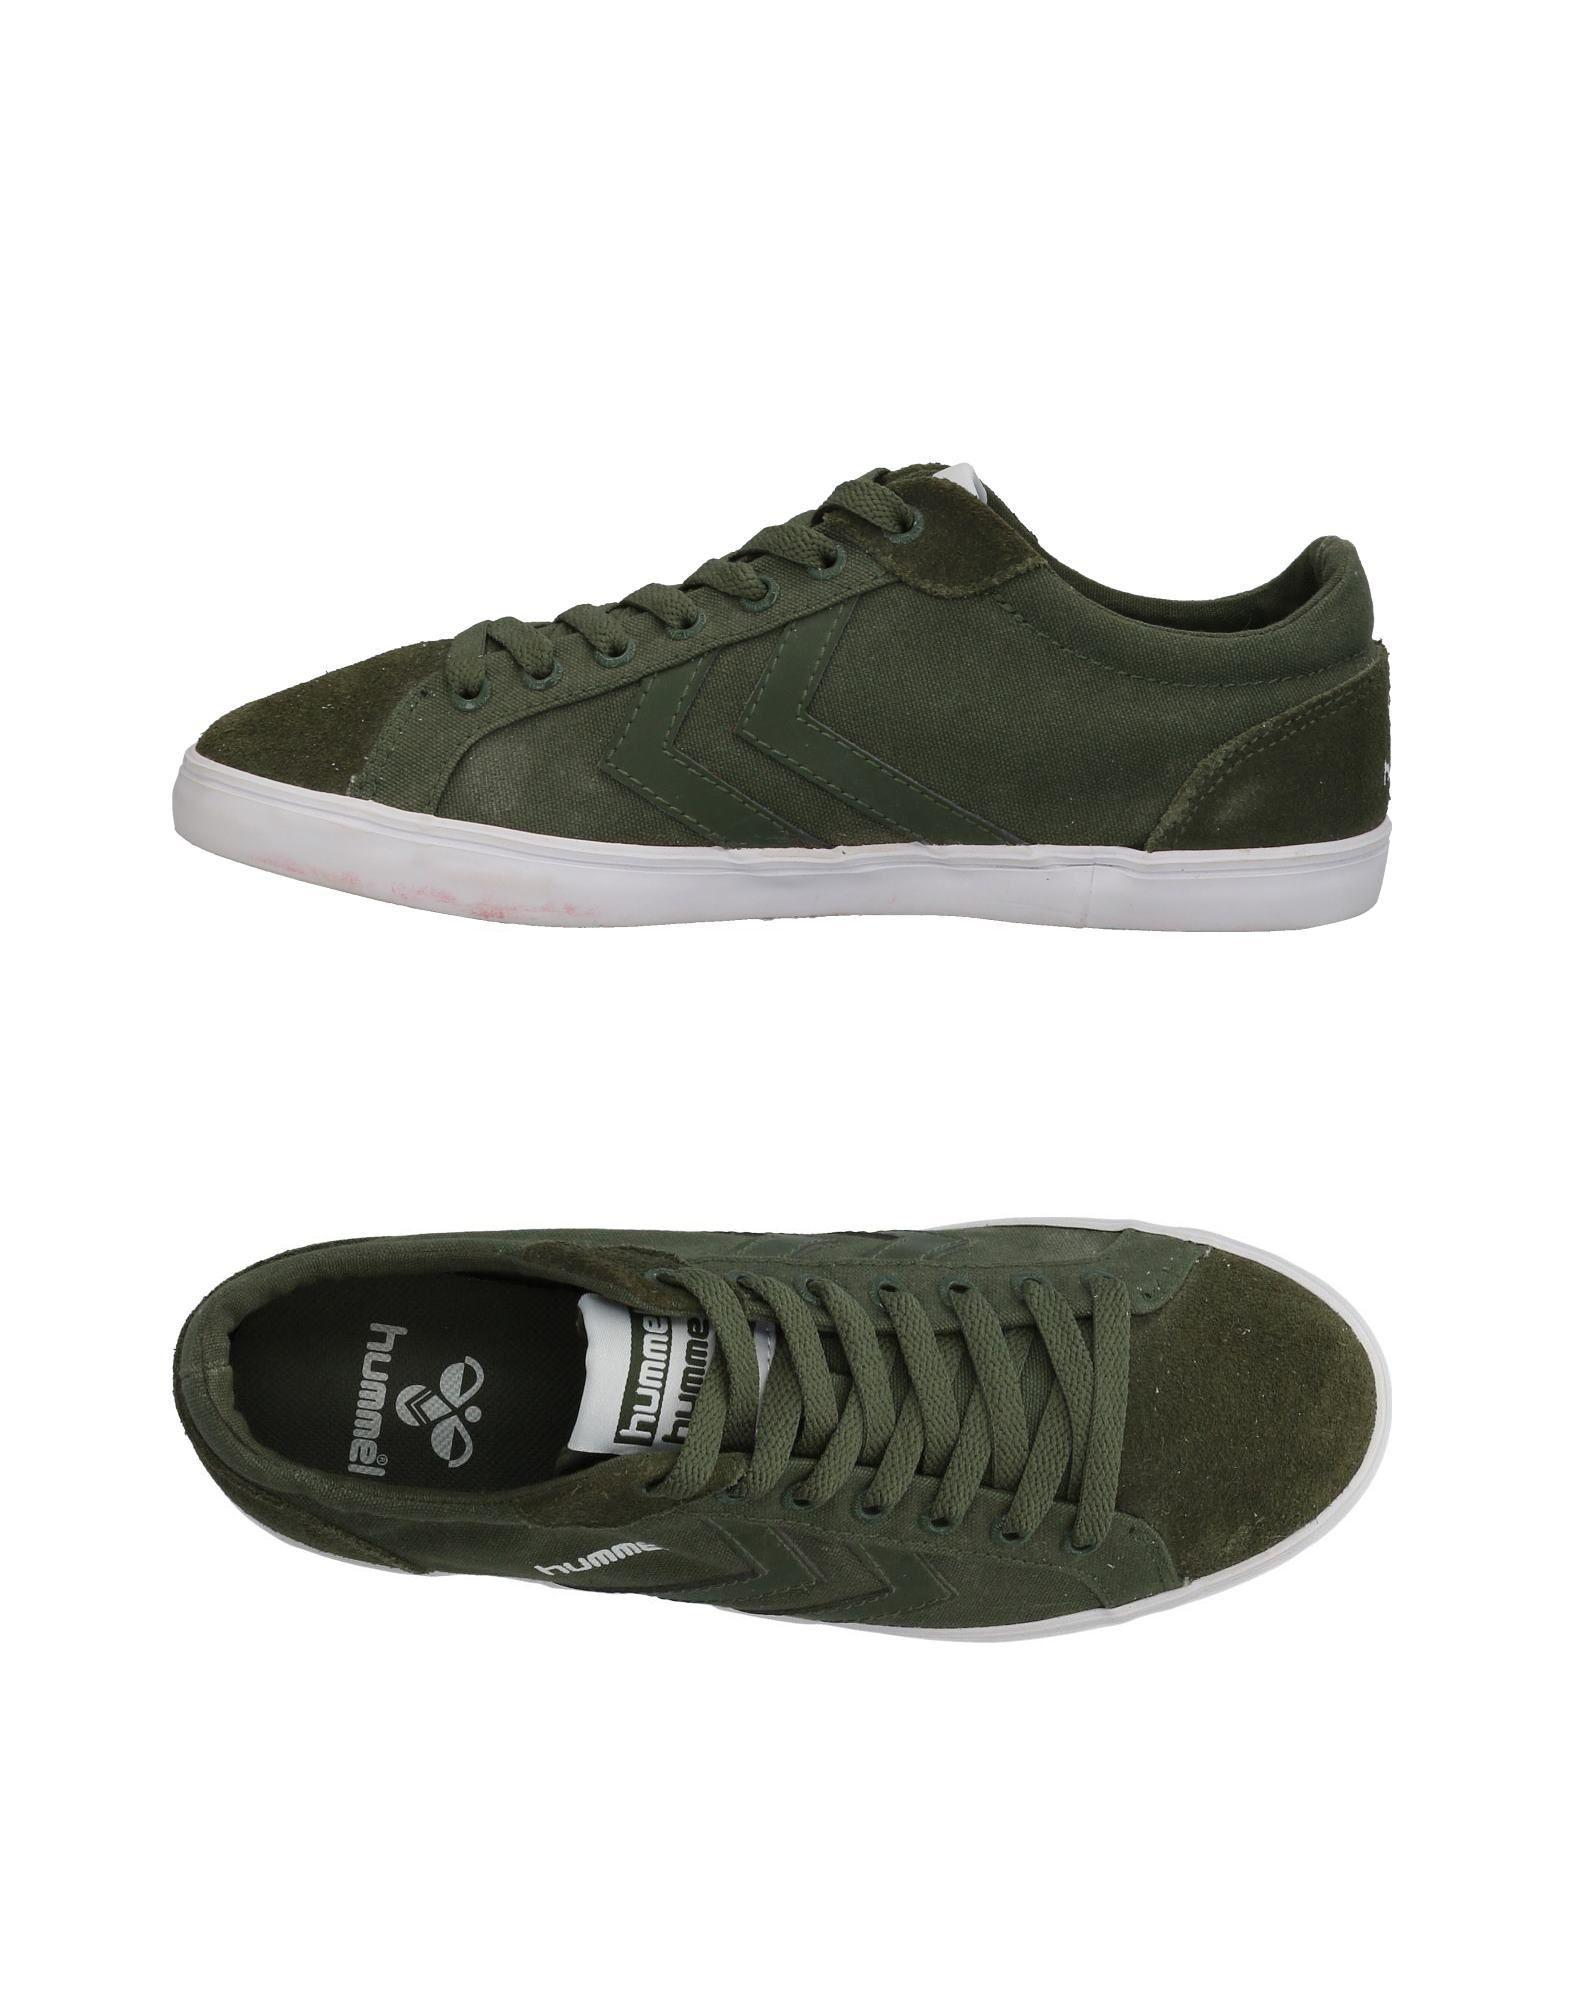 FOOTWEAR - Low-tops & sneakers Hummel D7bZ3uc